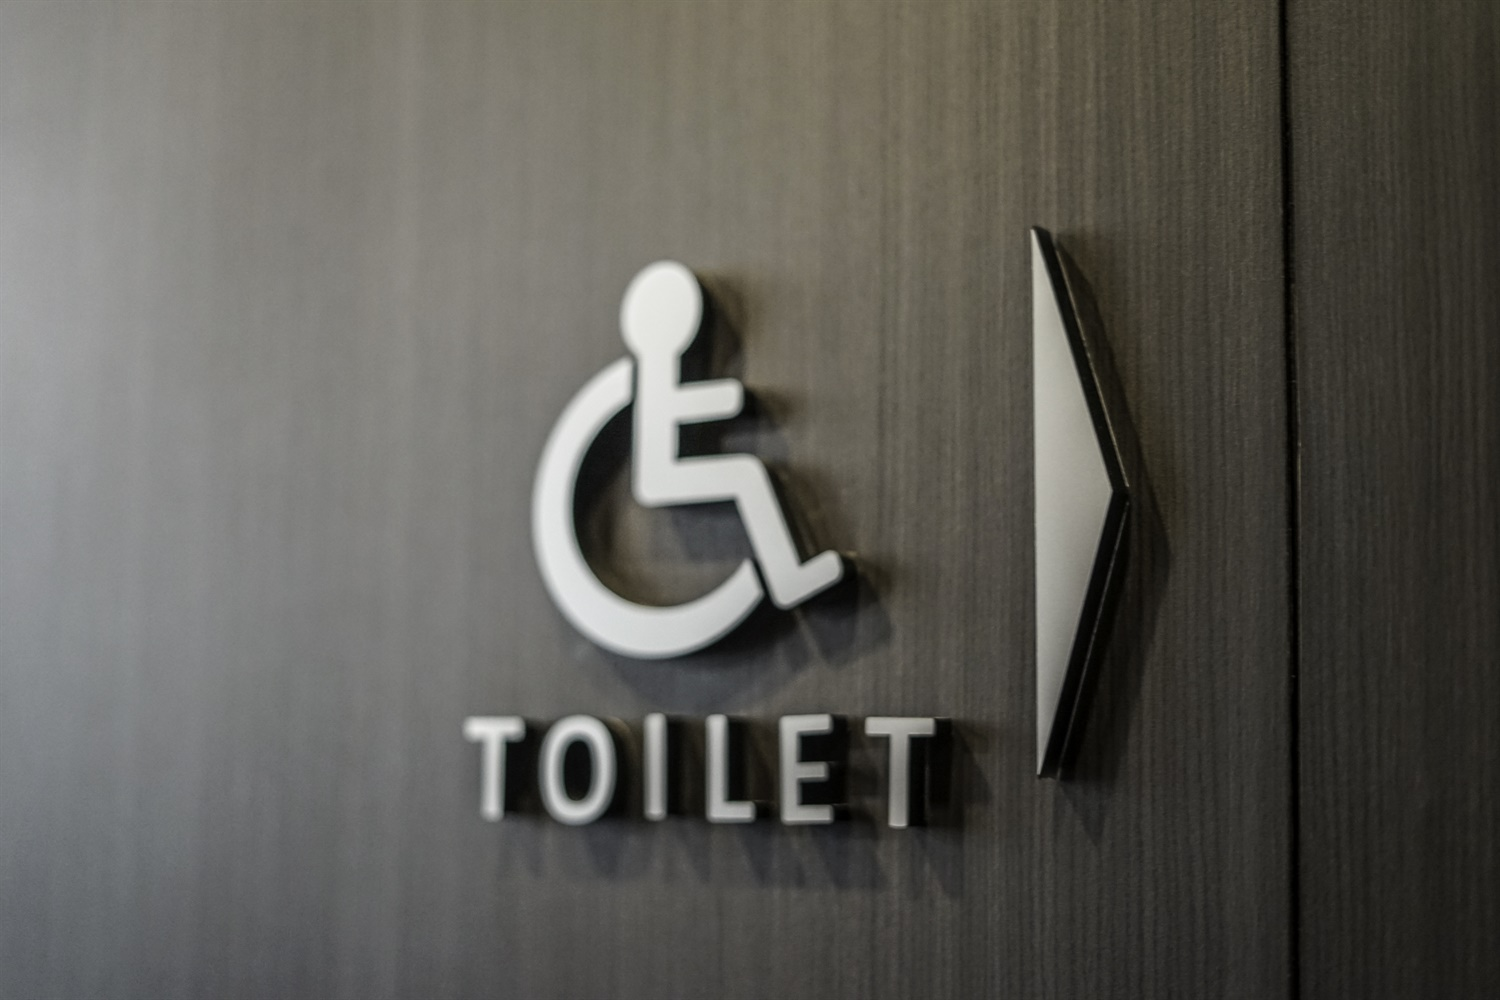 Funding announced for more Changing Places toilets in NHS hospitals